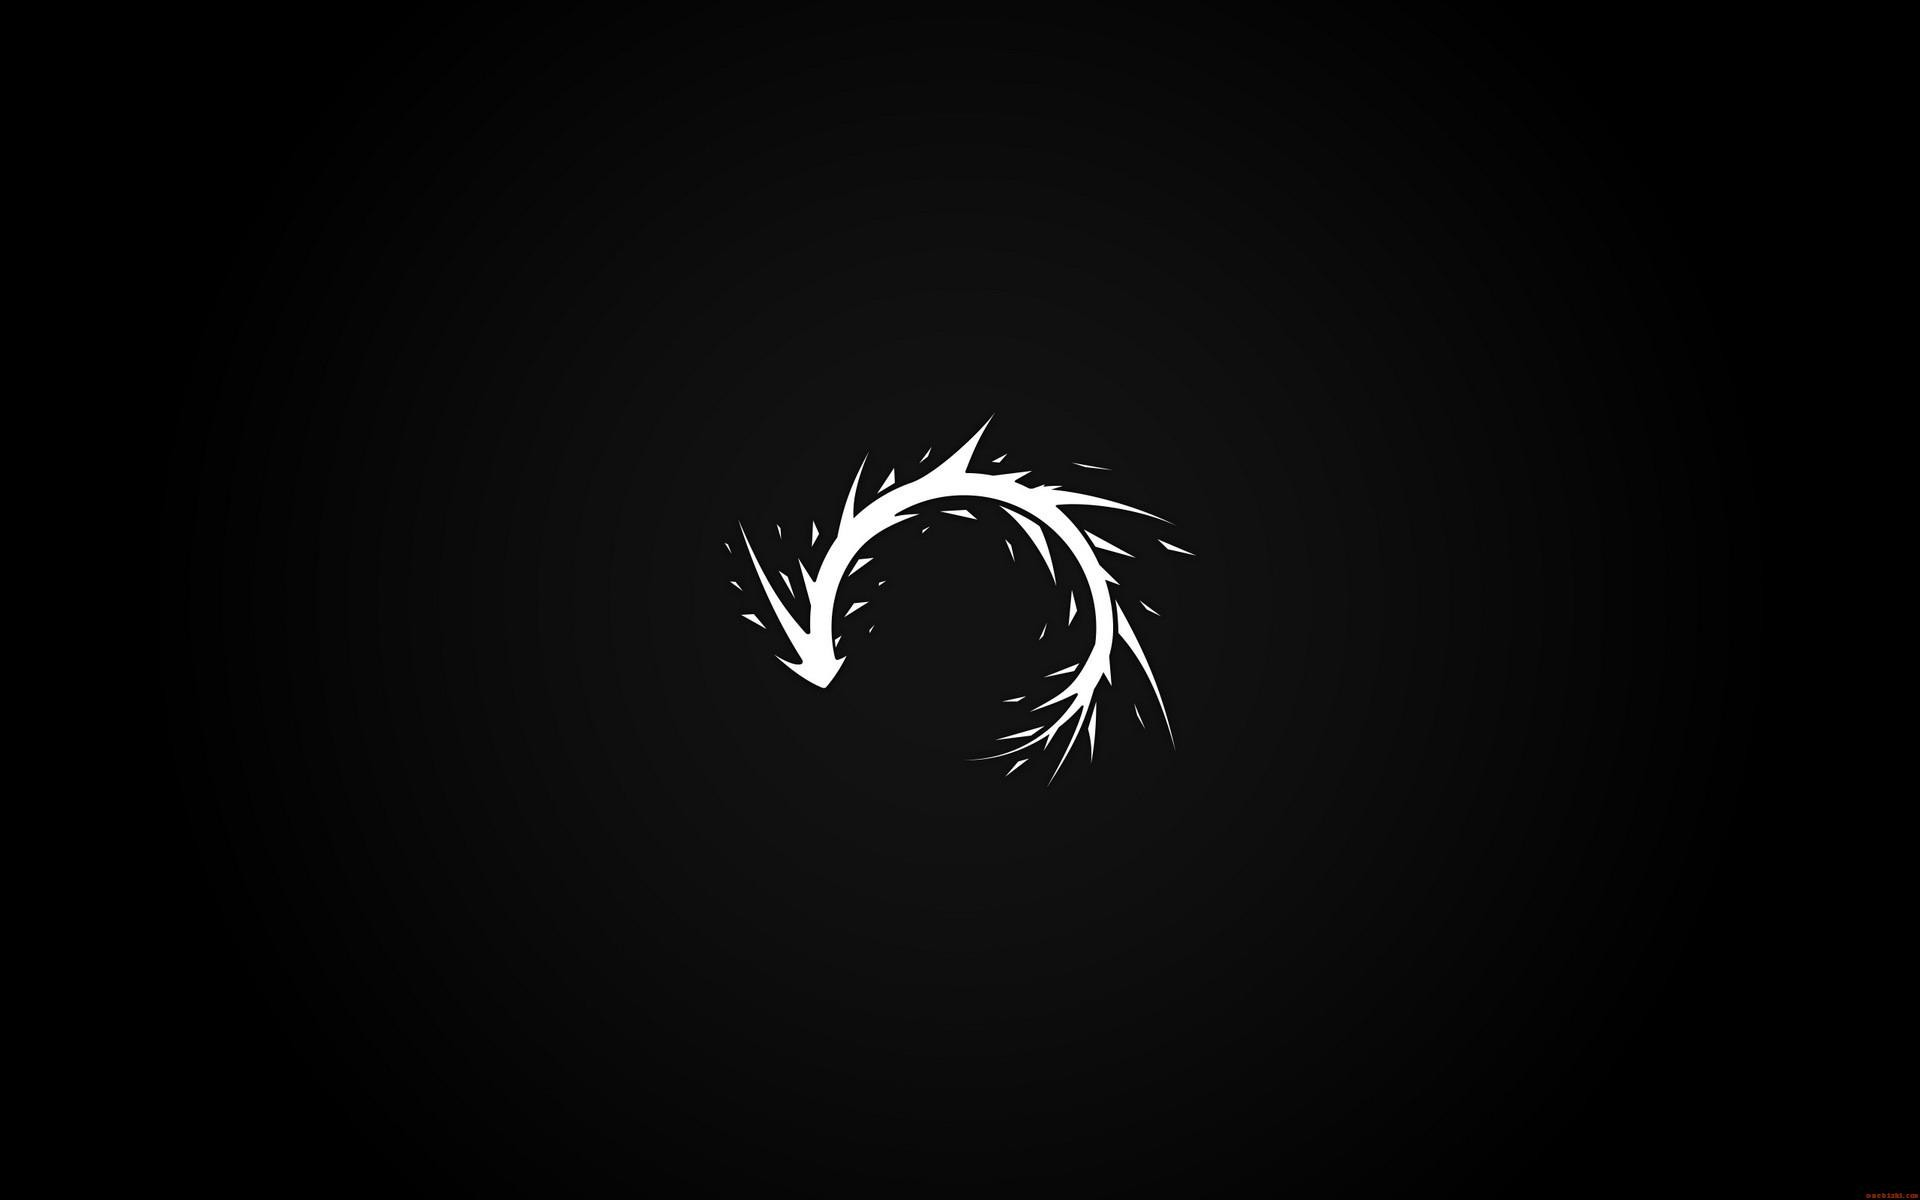 Abstract black minimalistic dark white paint splatter arrows black background curved wallpaper | 1920x1200 | 15537 | WallpaperUP